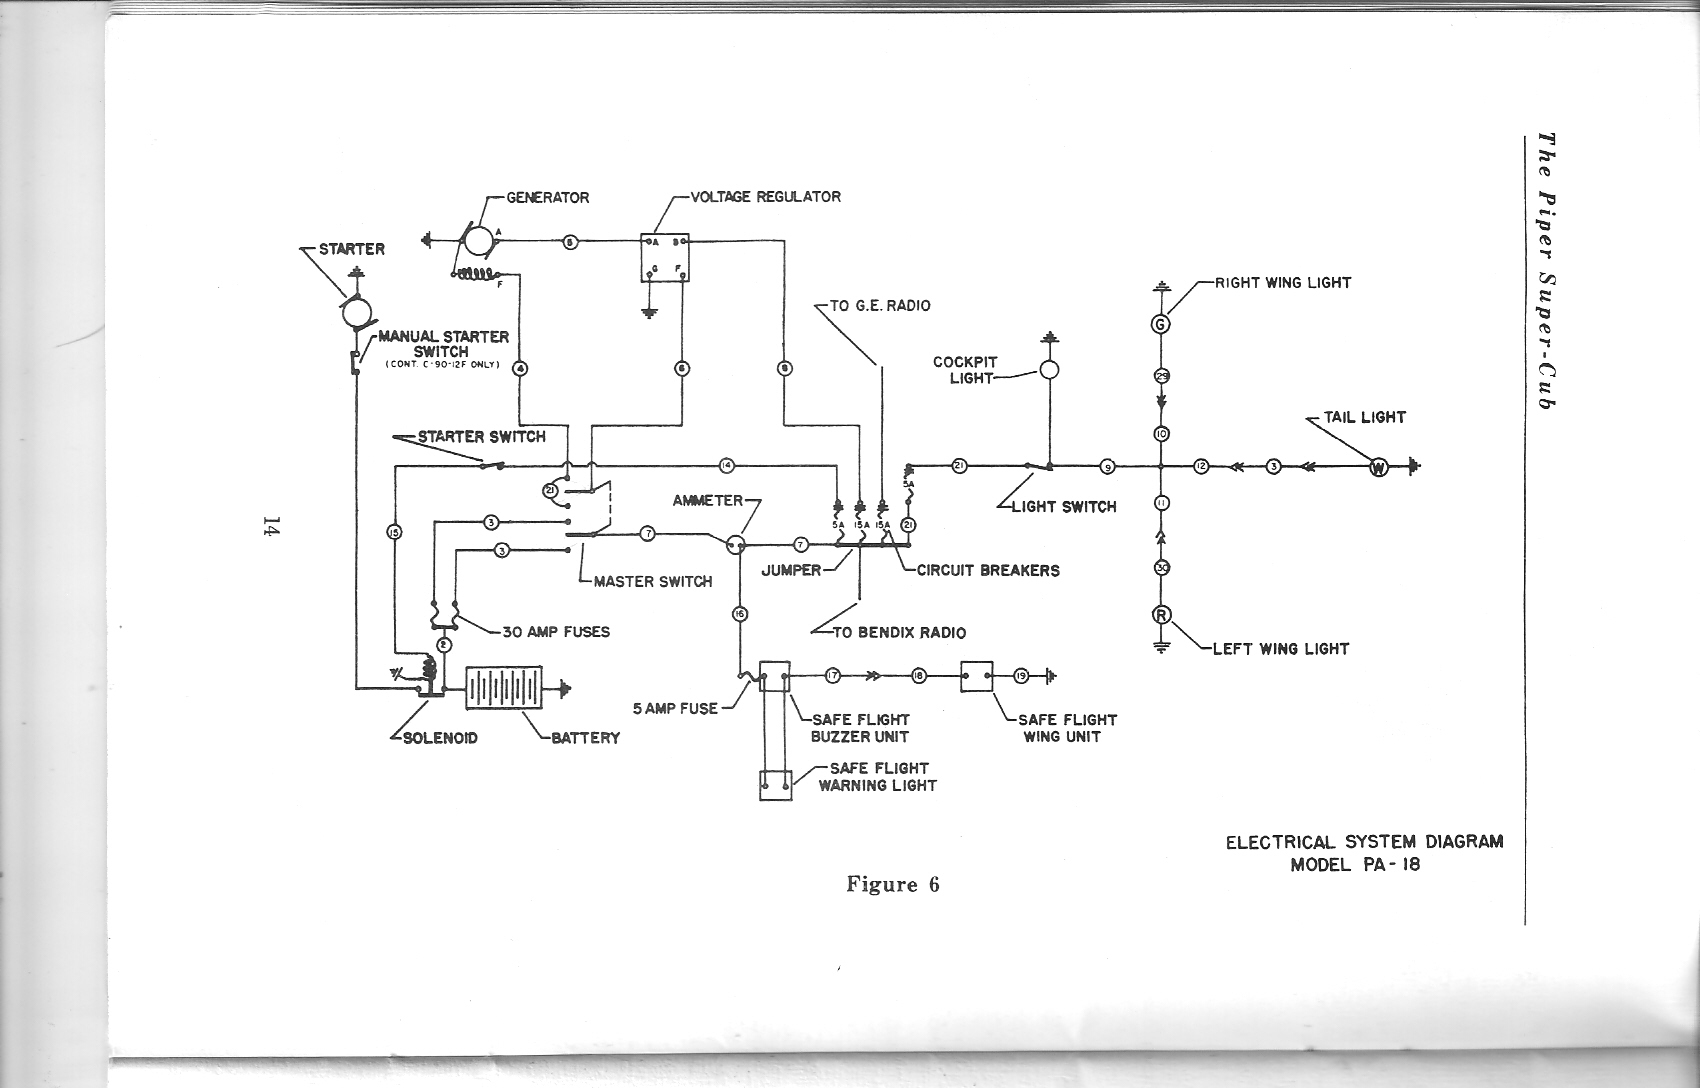 a c system diagram for 2010 honda oddessey electrical wiring diagram wiring a pa system diagram #5